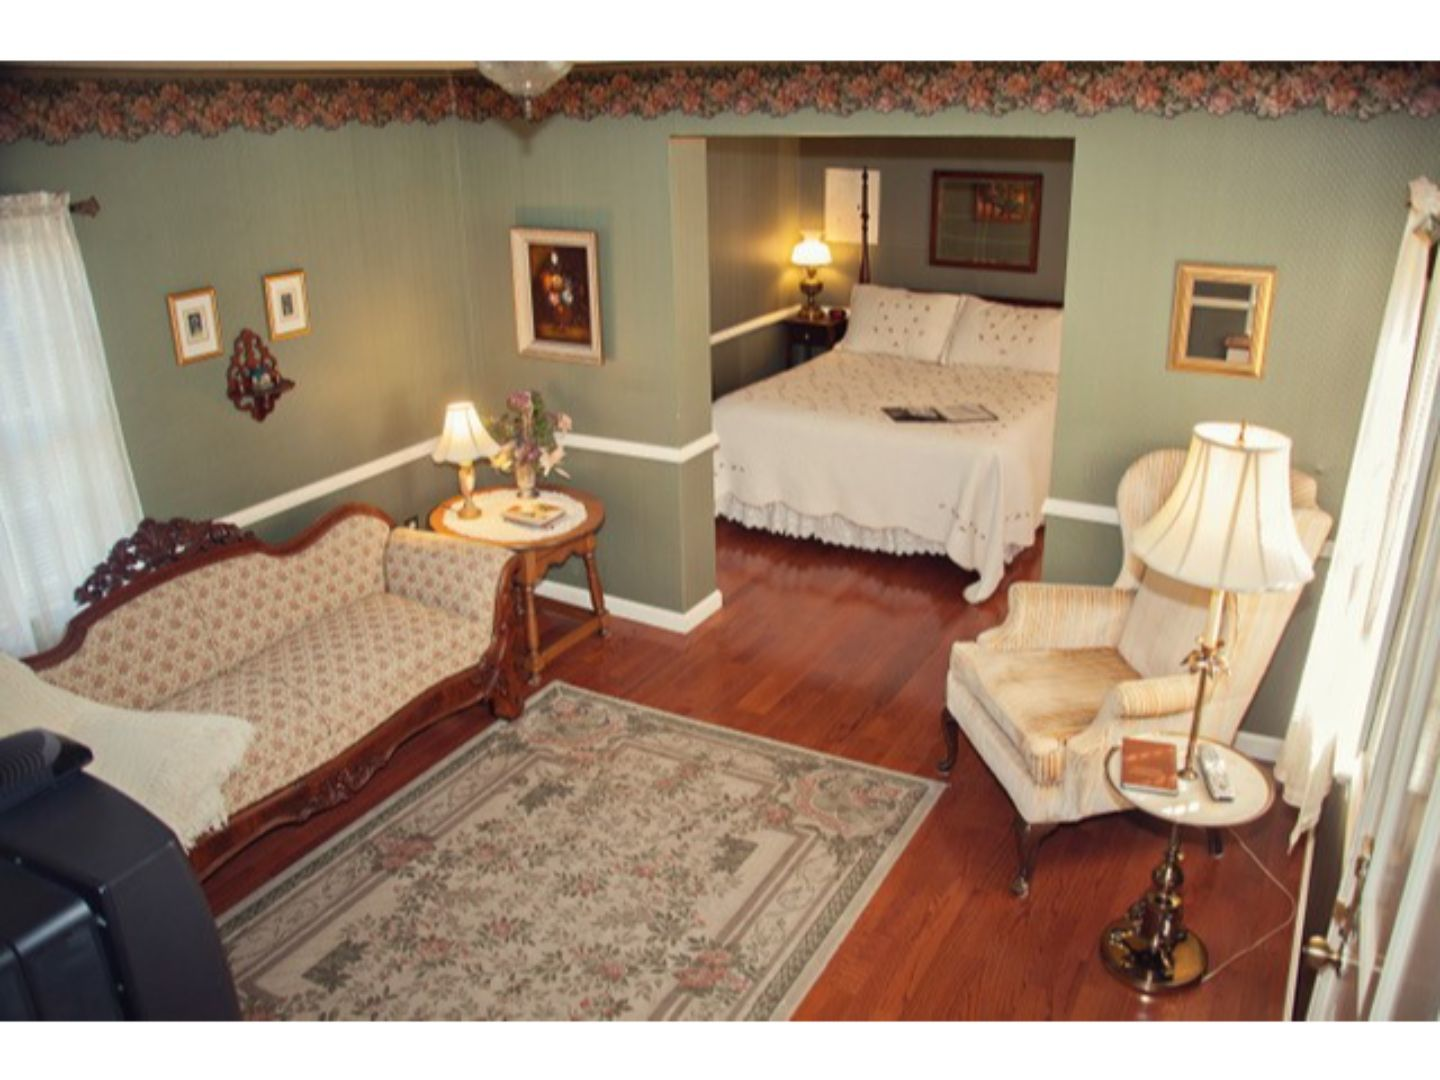 A living room at The Carriage Inn Bed and Breakfast.